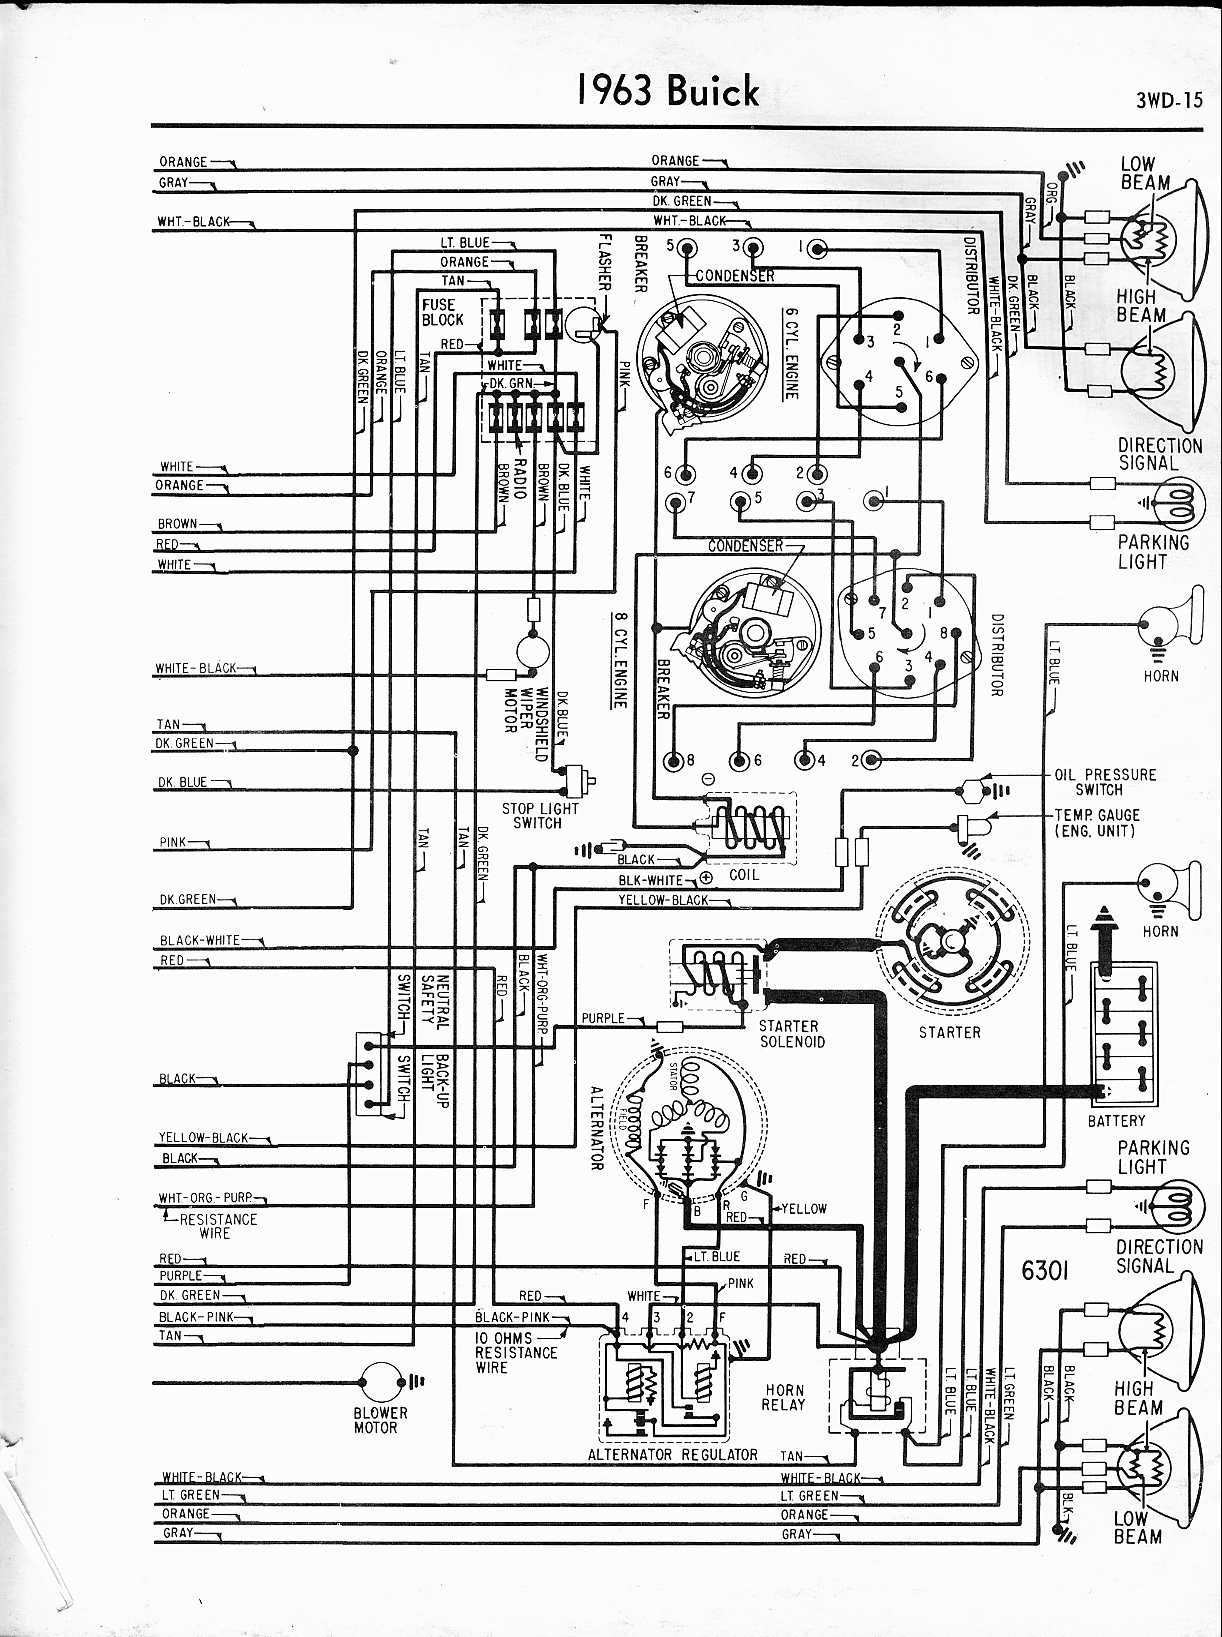 1969 Buick Wiring Schematics Online Content Resource Of 1989 Century Transmission Wire Schematic 71 Diagram Pictures U2022 Rh Mapavick Co Uk 2001 Injector